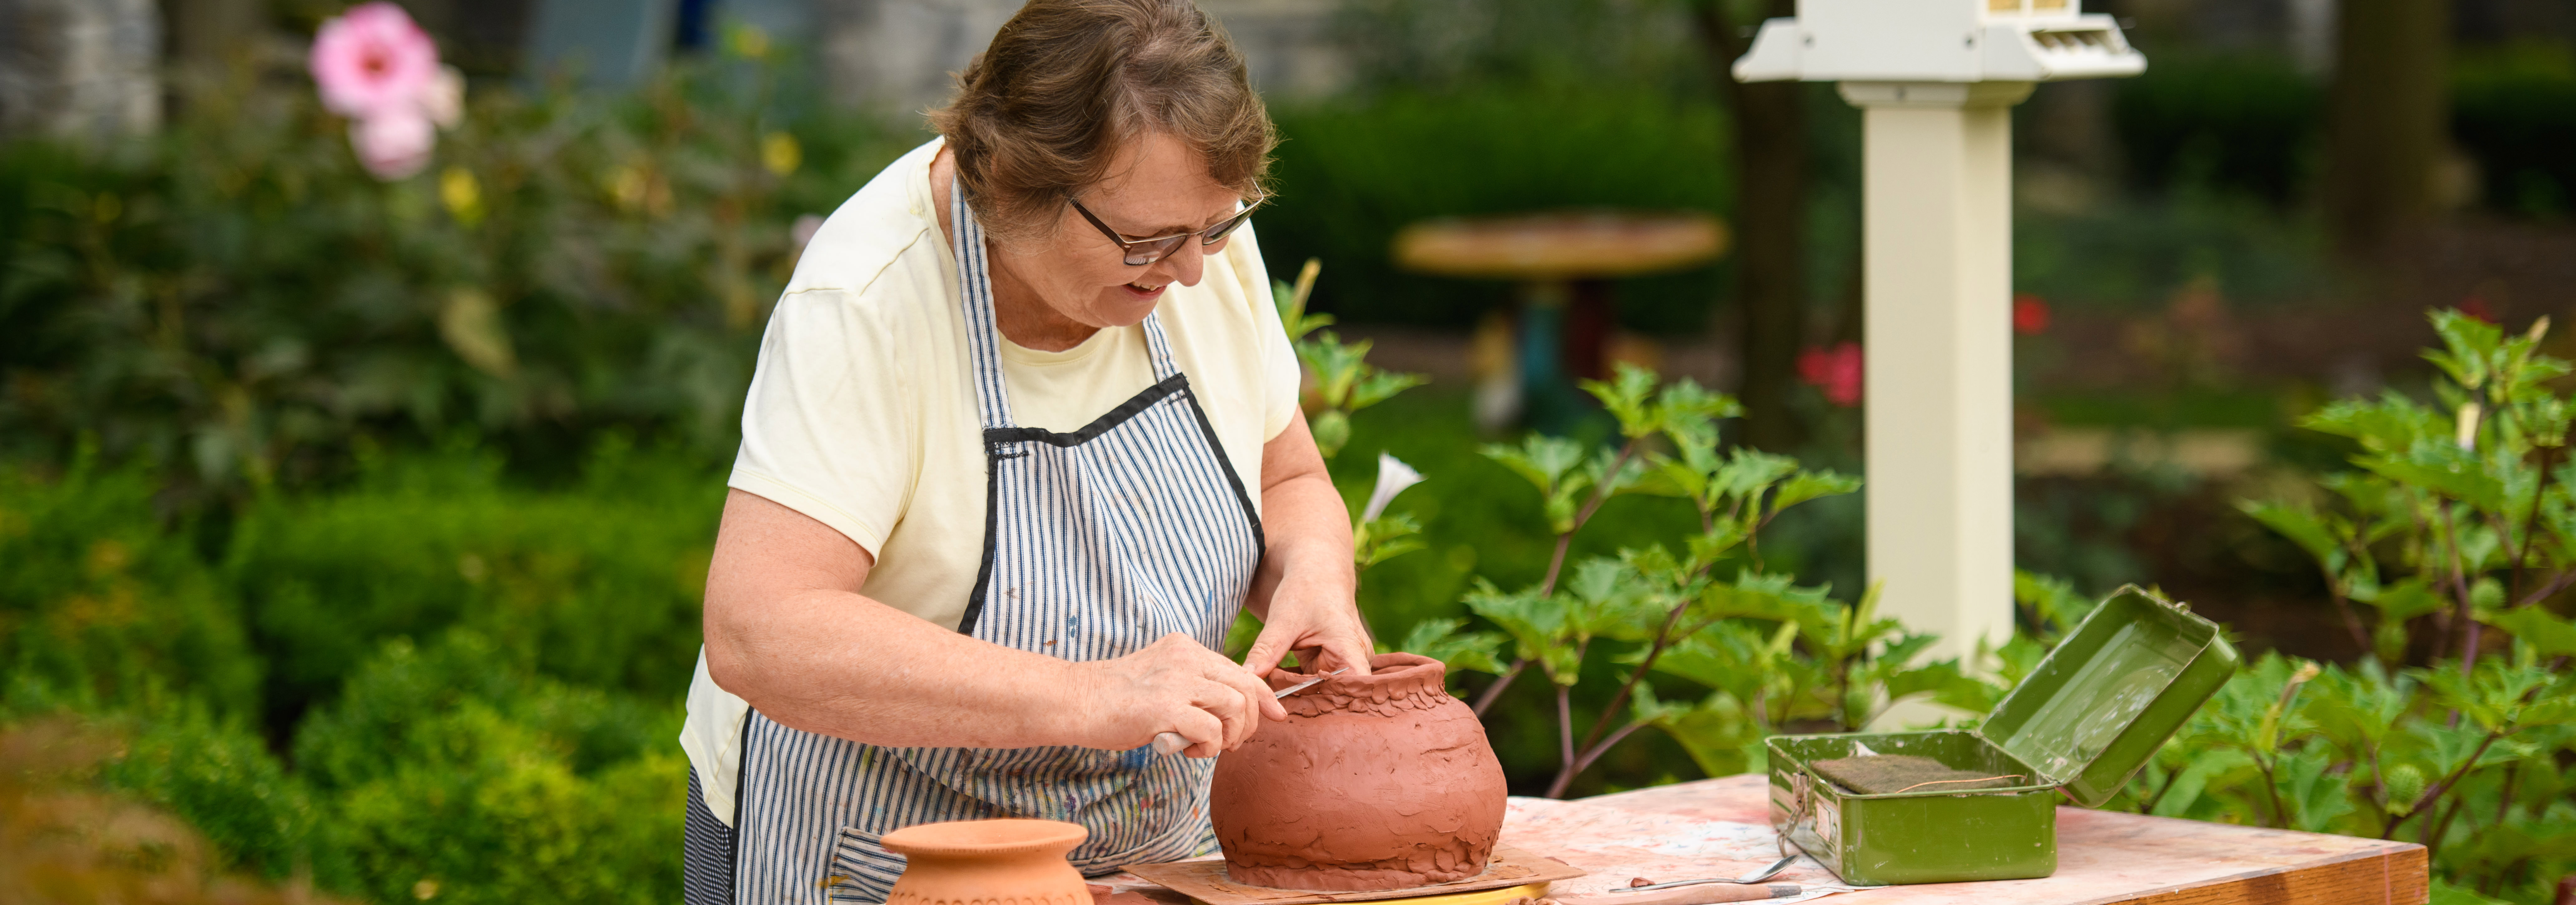 Evelyn Hershey makes traditional African cooking pots at Garden Spot Village